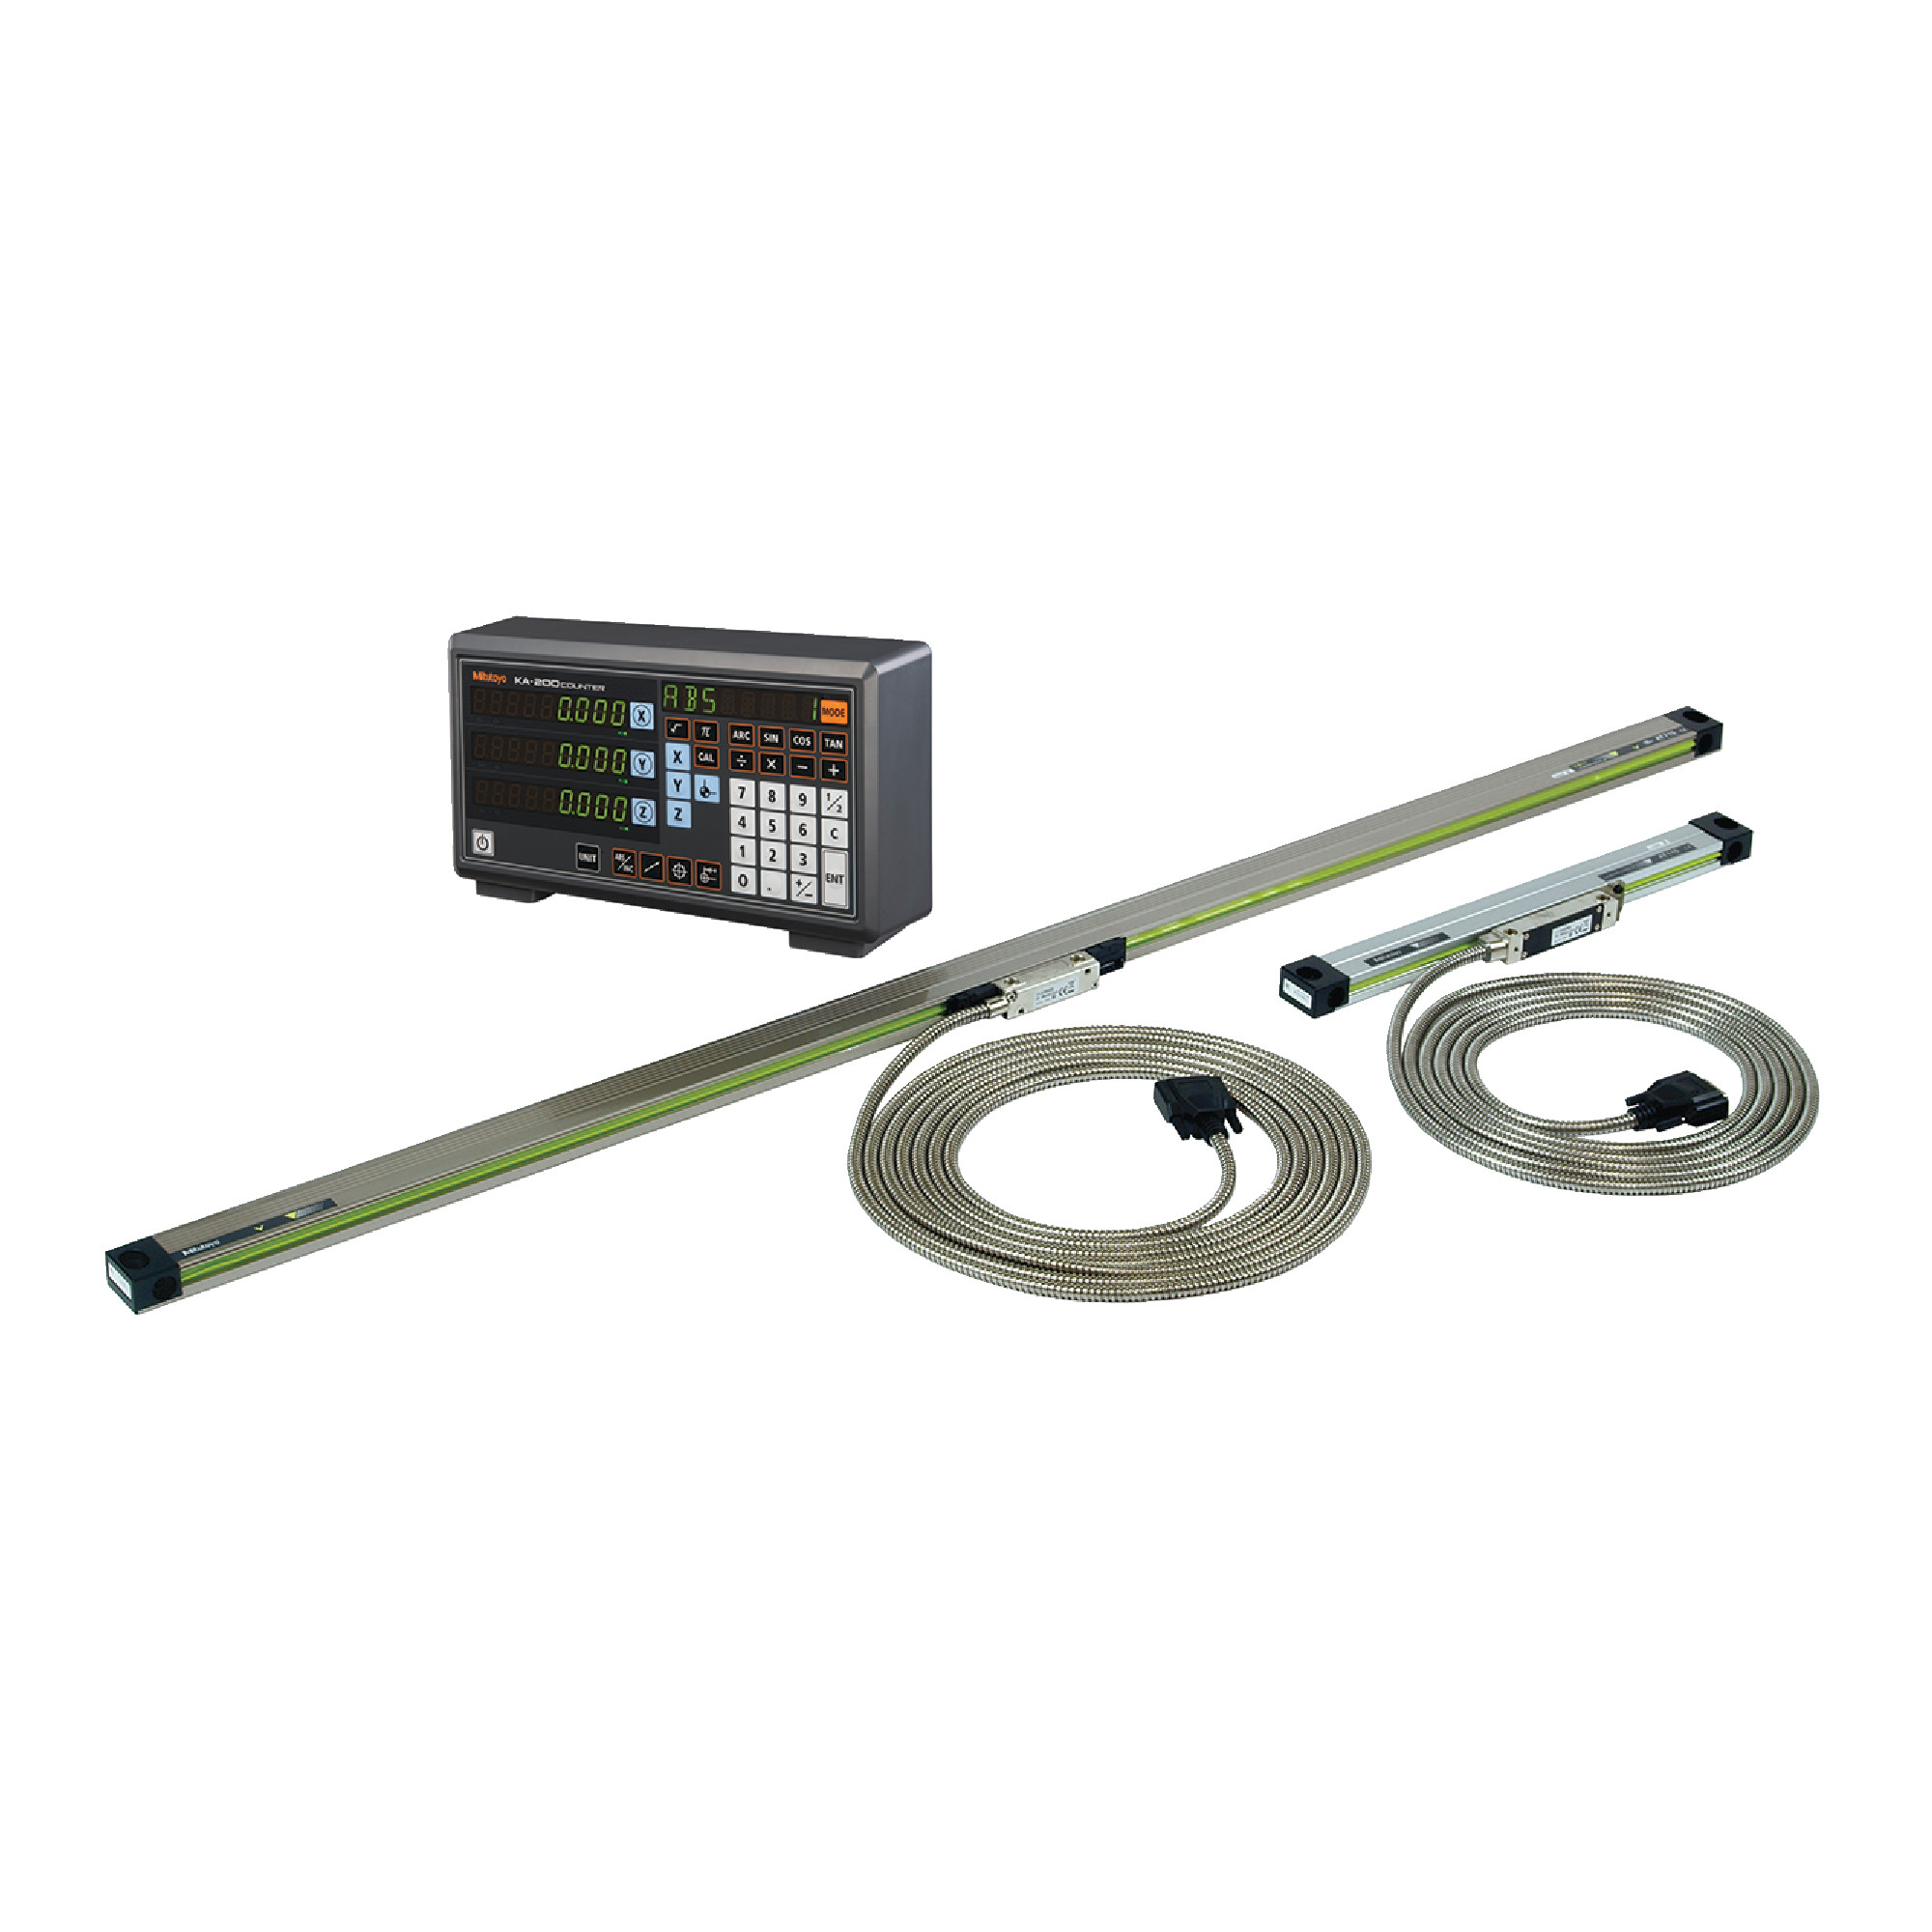 Digital Readout Counter Package